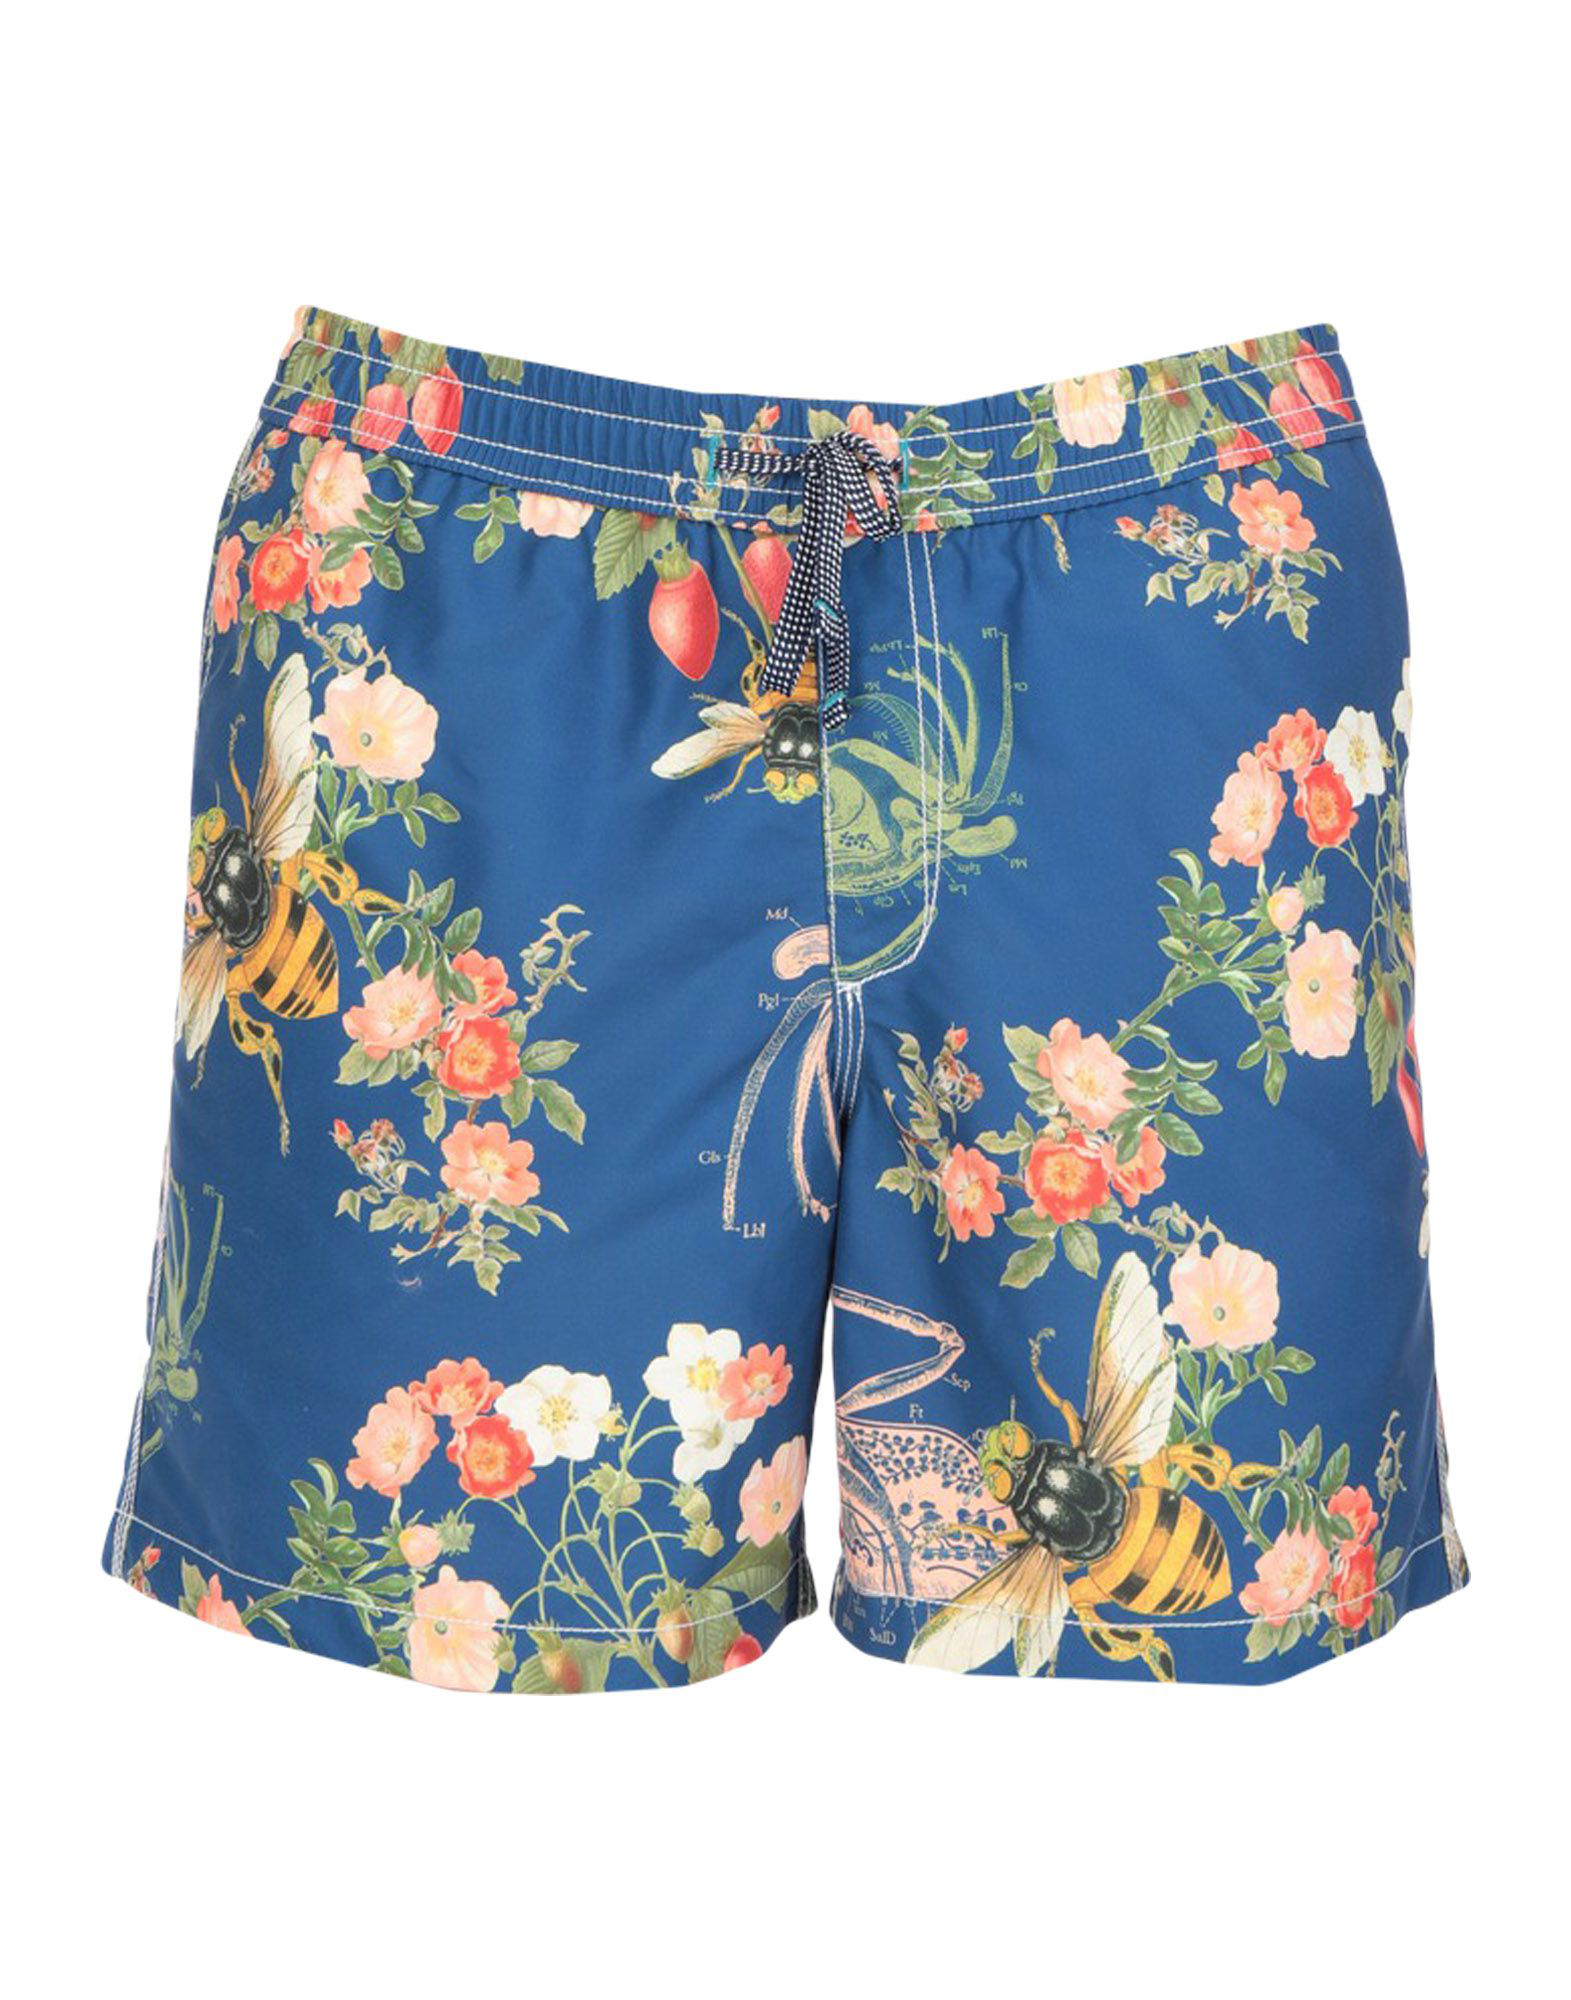 Swim In Shorts Swim Dark Blue In Blue Shorts Shorts Dark Swim In Dark bfg76yY